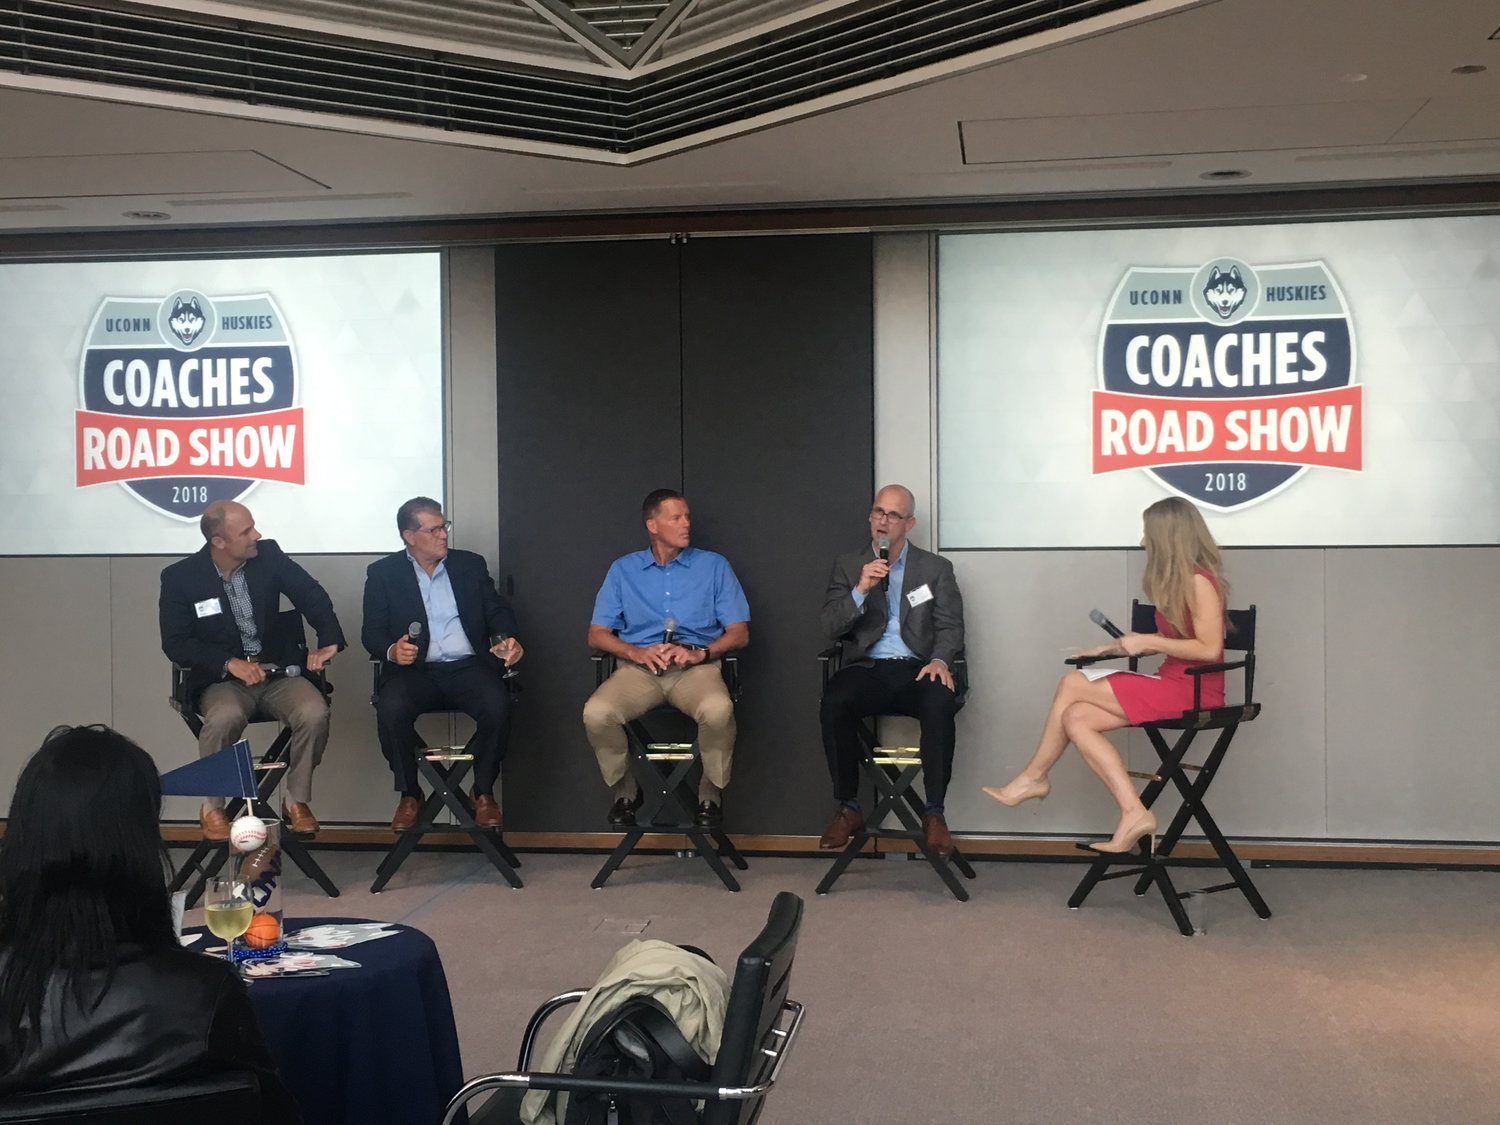 From last year's Road Show, from left to right: Baseball head coach Jim Penders, women's basektball head coach Geno Auriemma, football head coach Randy Edsall and men's basketball head coach Dan Hurley. (File photo/The Daily Campus)